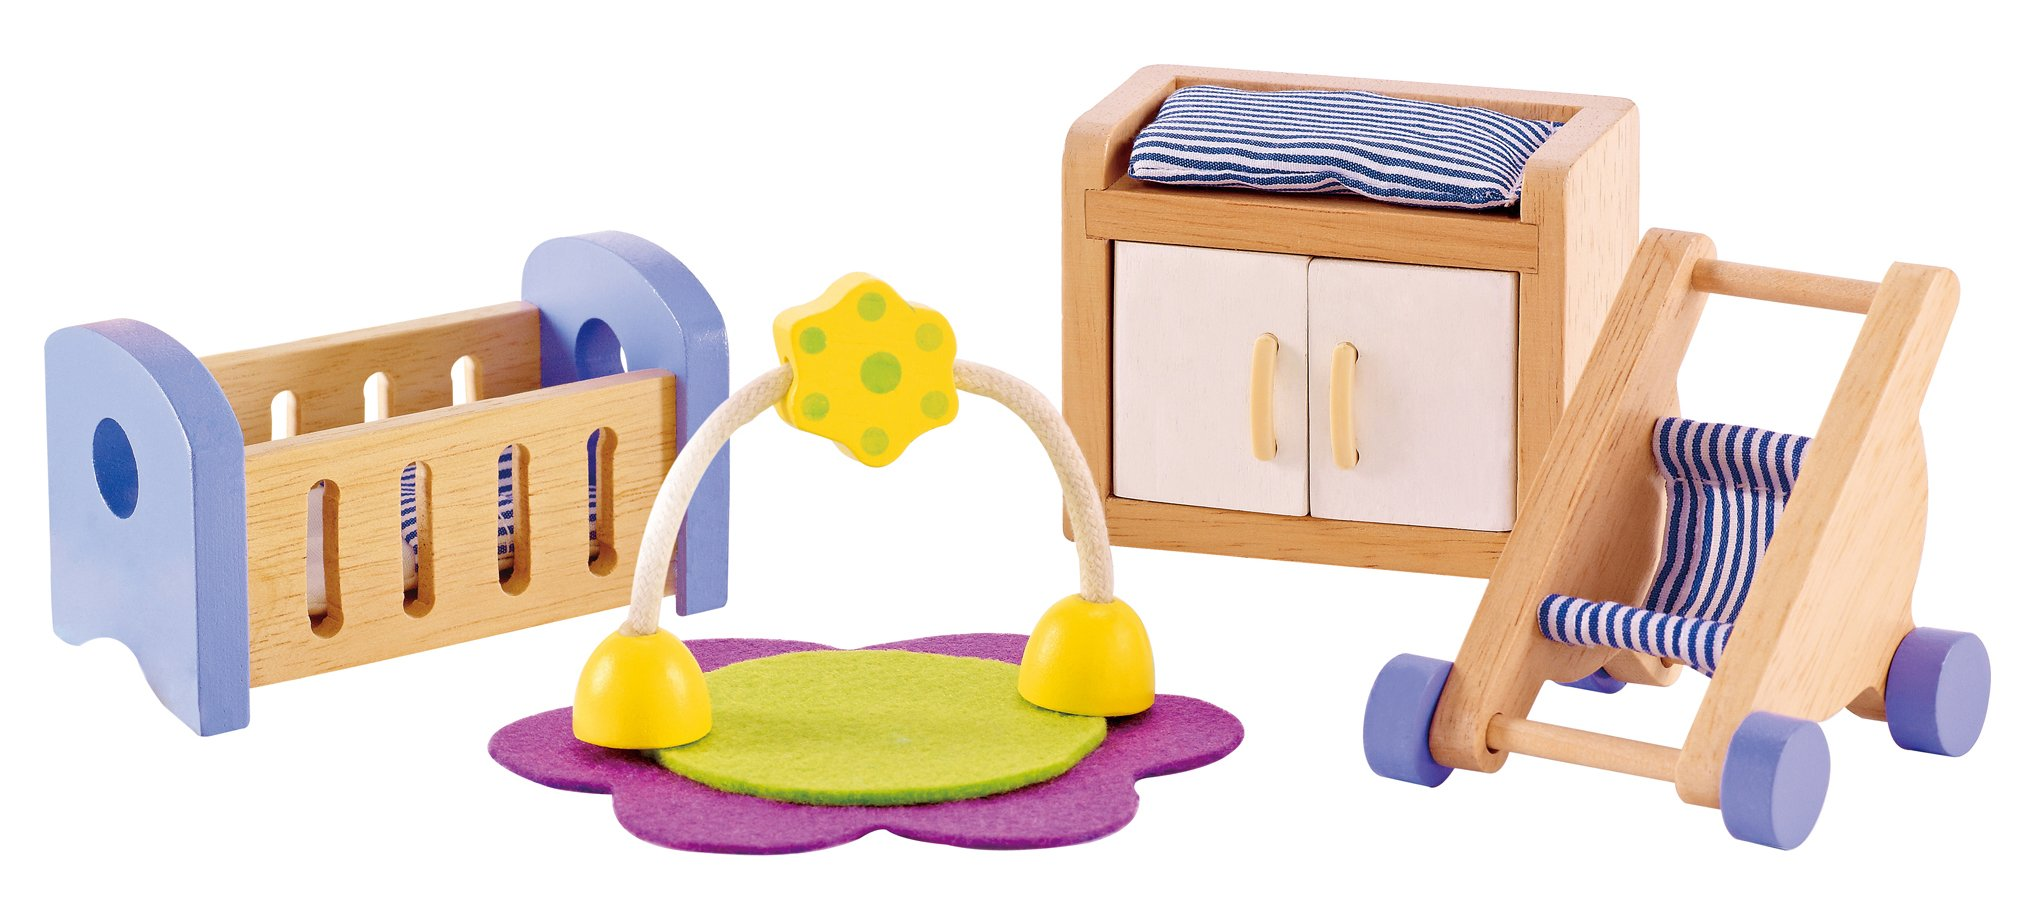 Hape Wooden Doll House Furniture Baby's Room Set